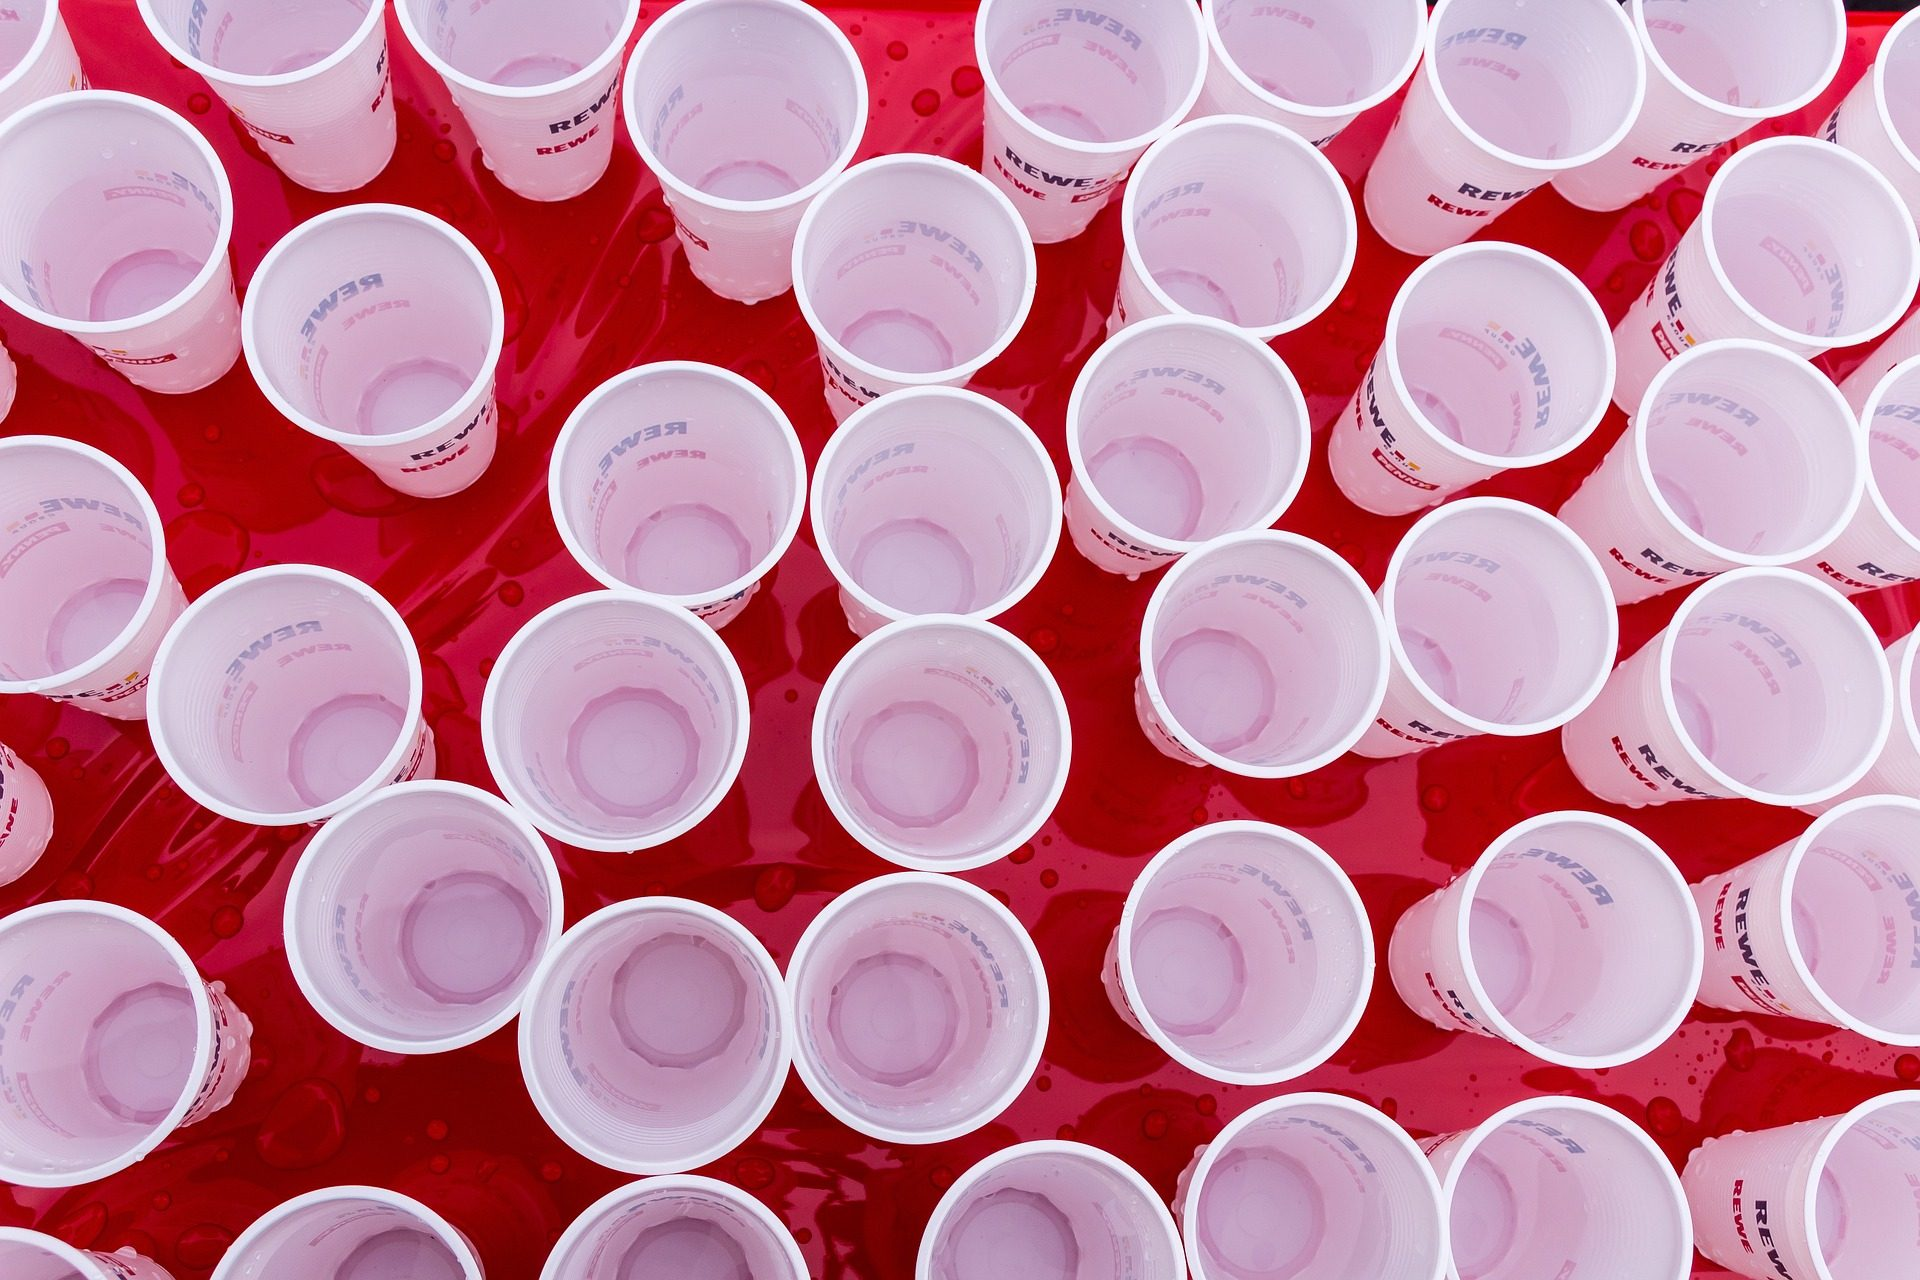 Solo: A Star Wars Movie Pairs with the Red Solo Cup [watch]